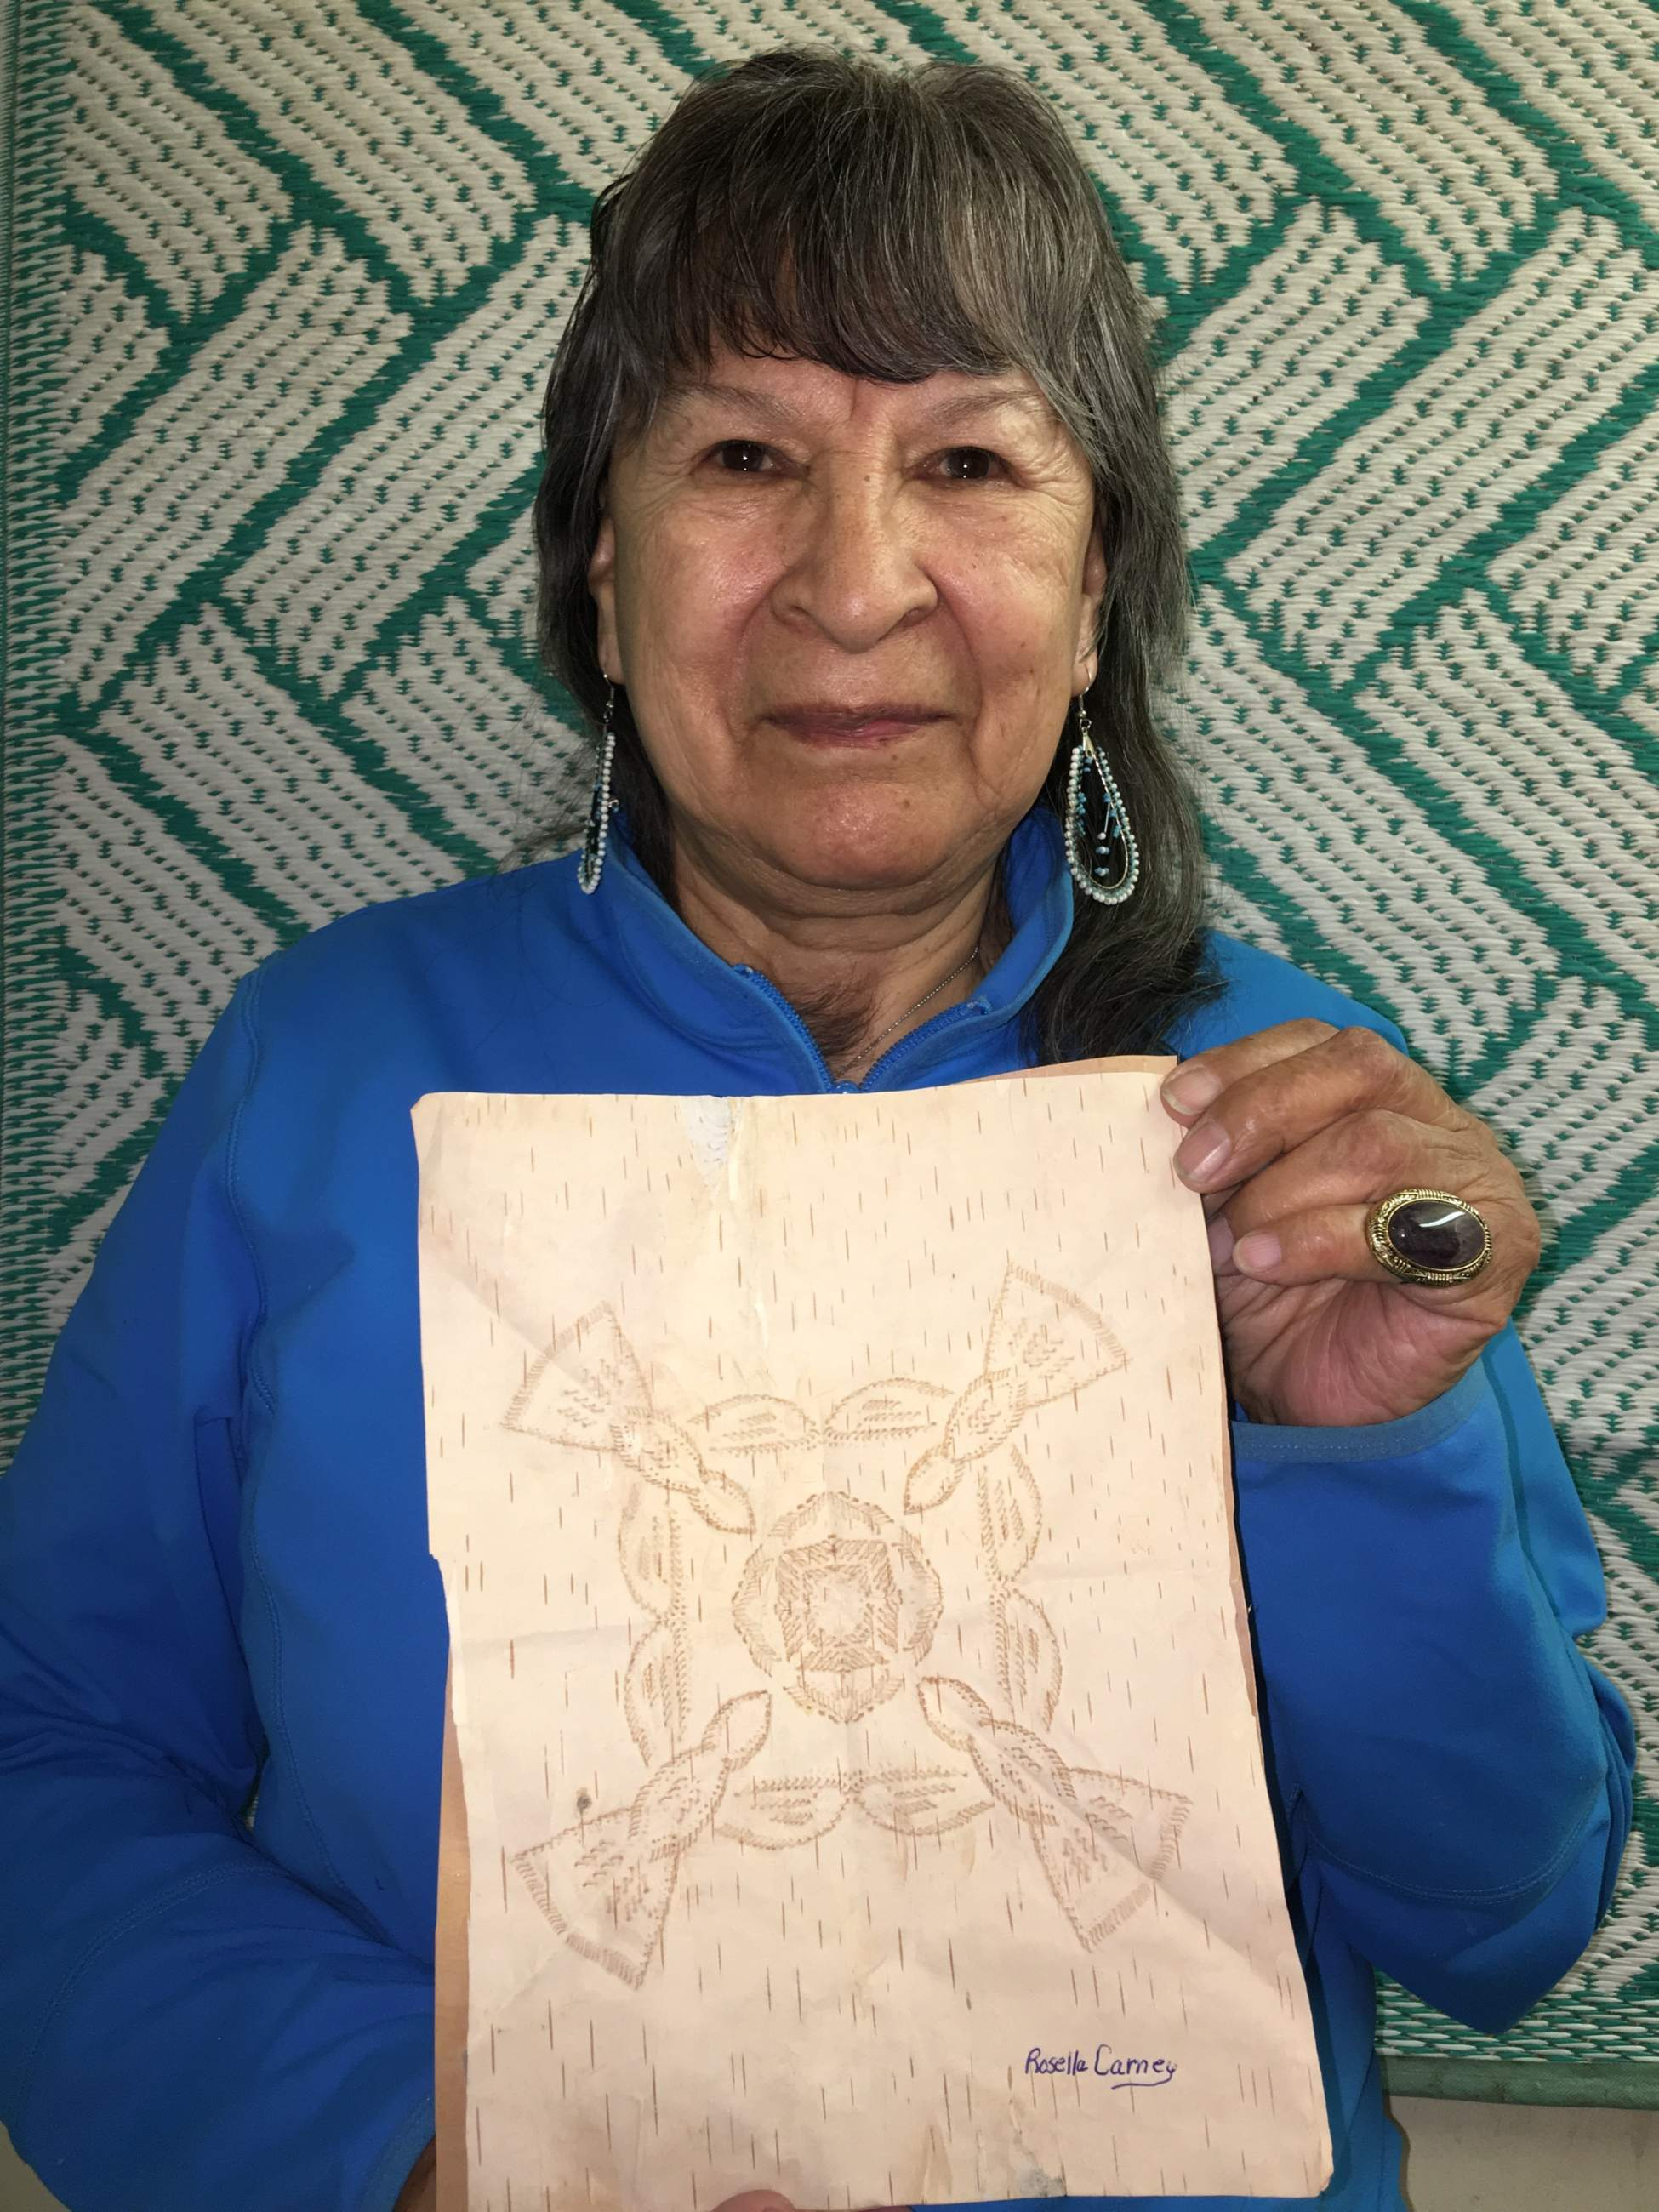 Rosella Ross Carney from northern Saskatchewan continues an old Indigenous tradition of birch bark biting art.